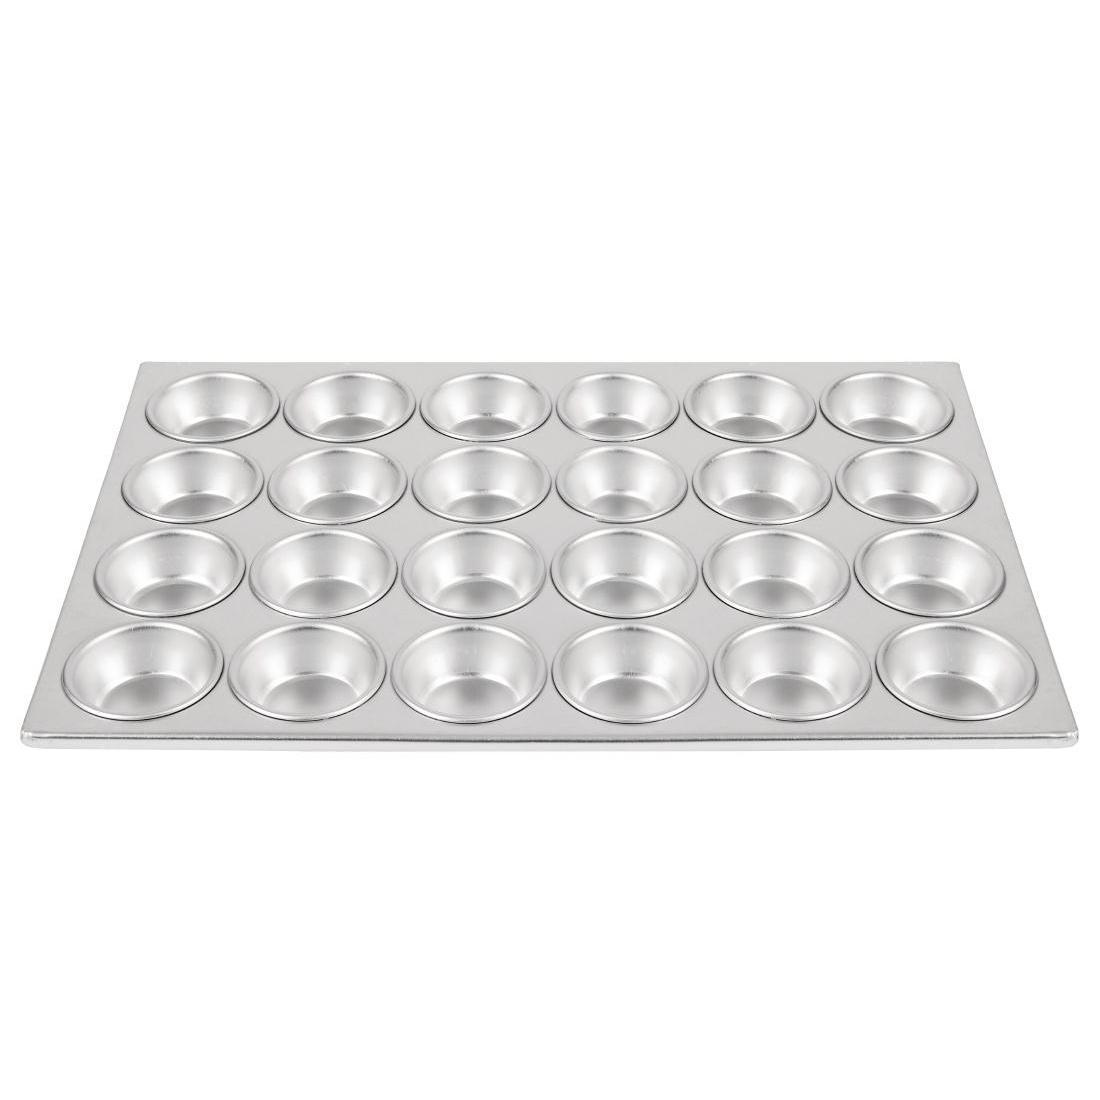 Vogue Aluminium Muffin Tray 24 Cup - Each - C563